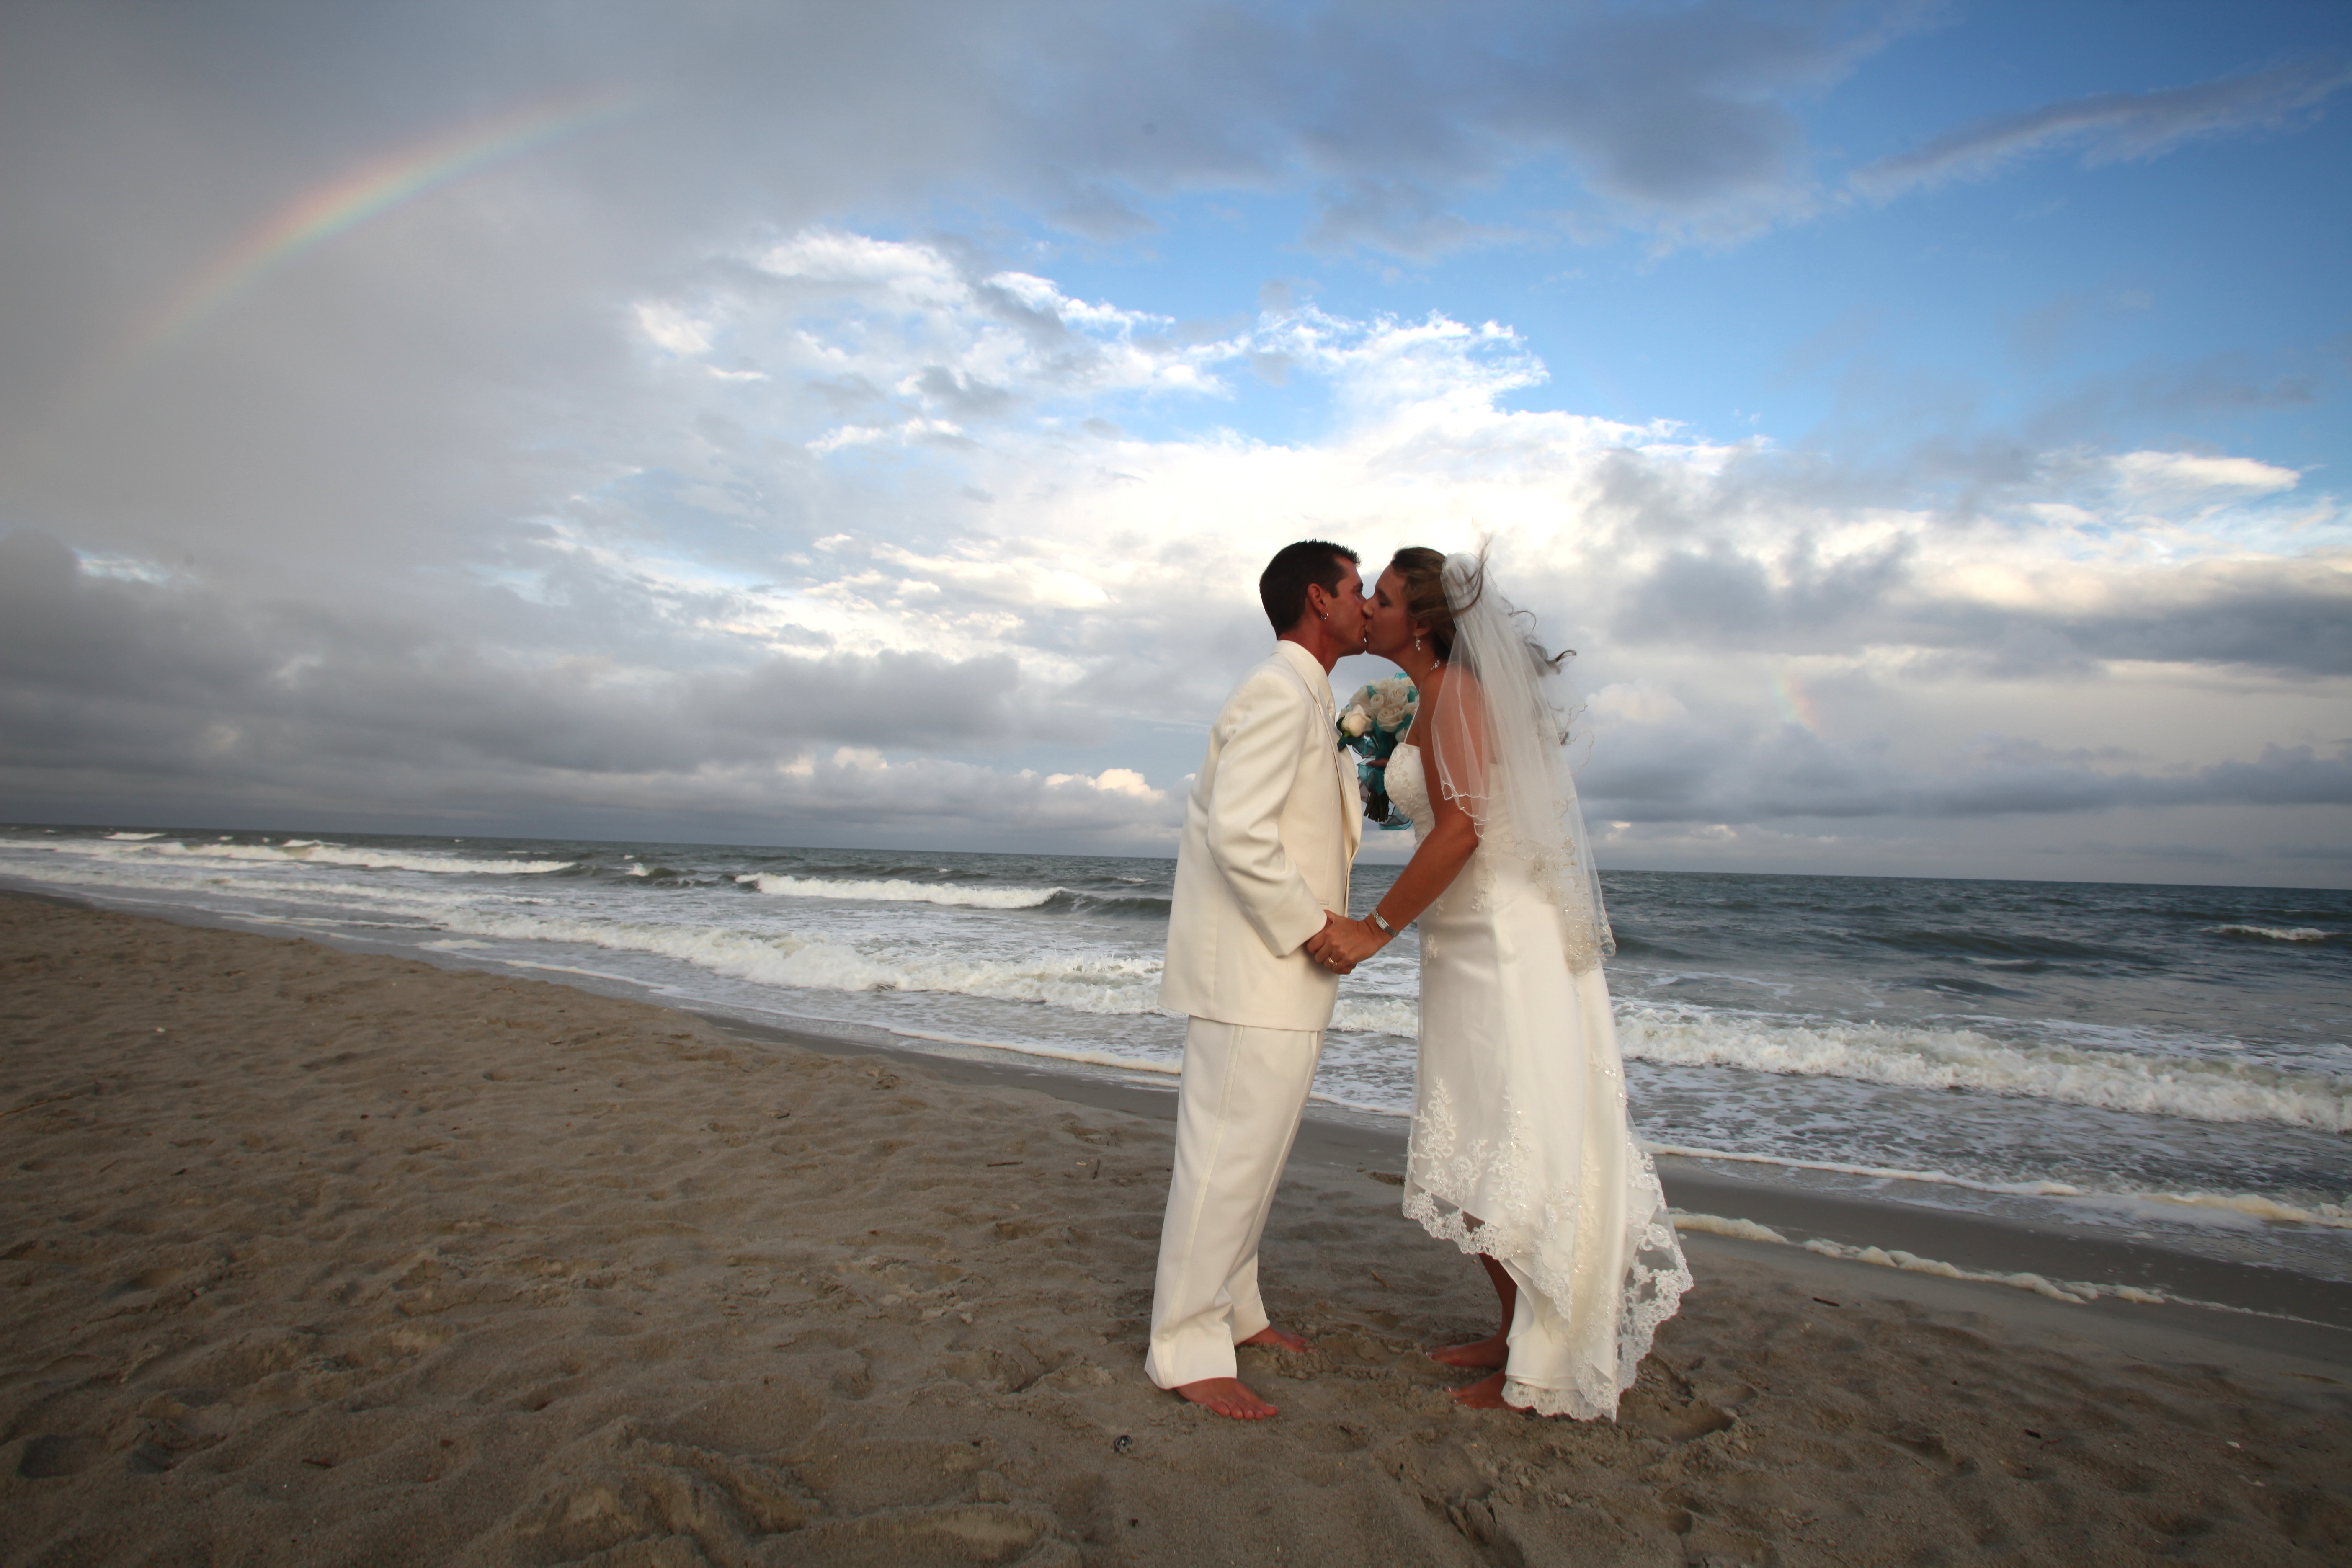 Myrtle beach wedding photographers 777 portraits for Best place for beach wedding